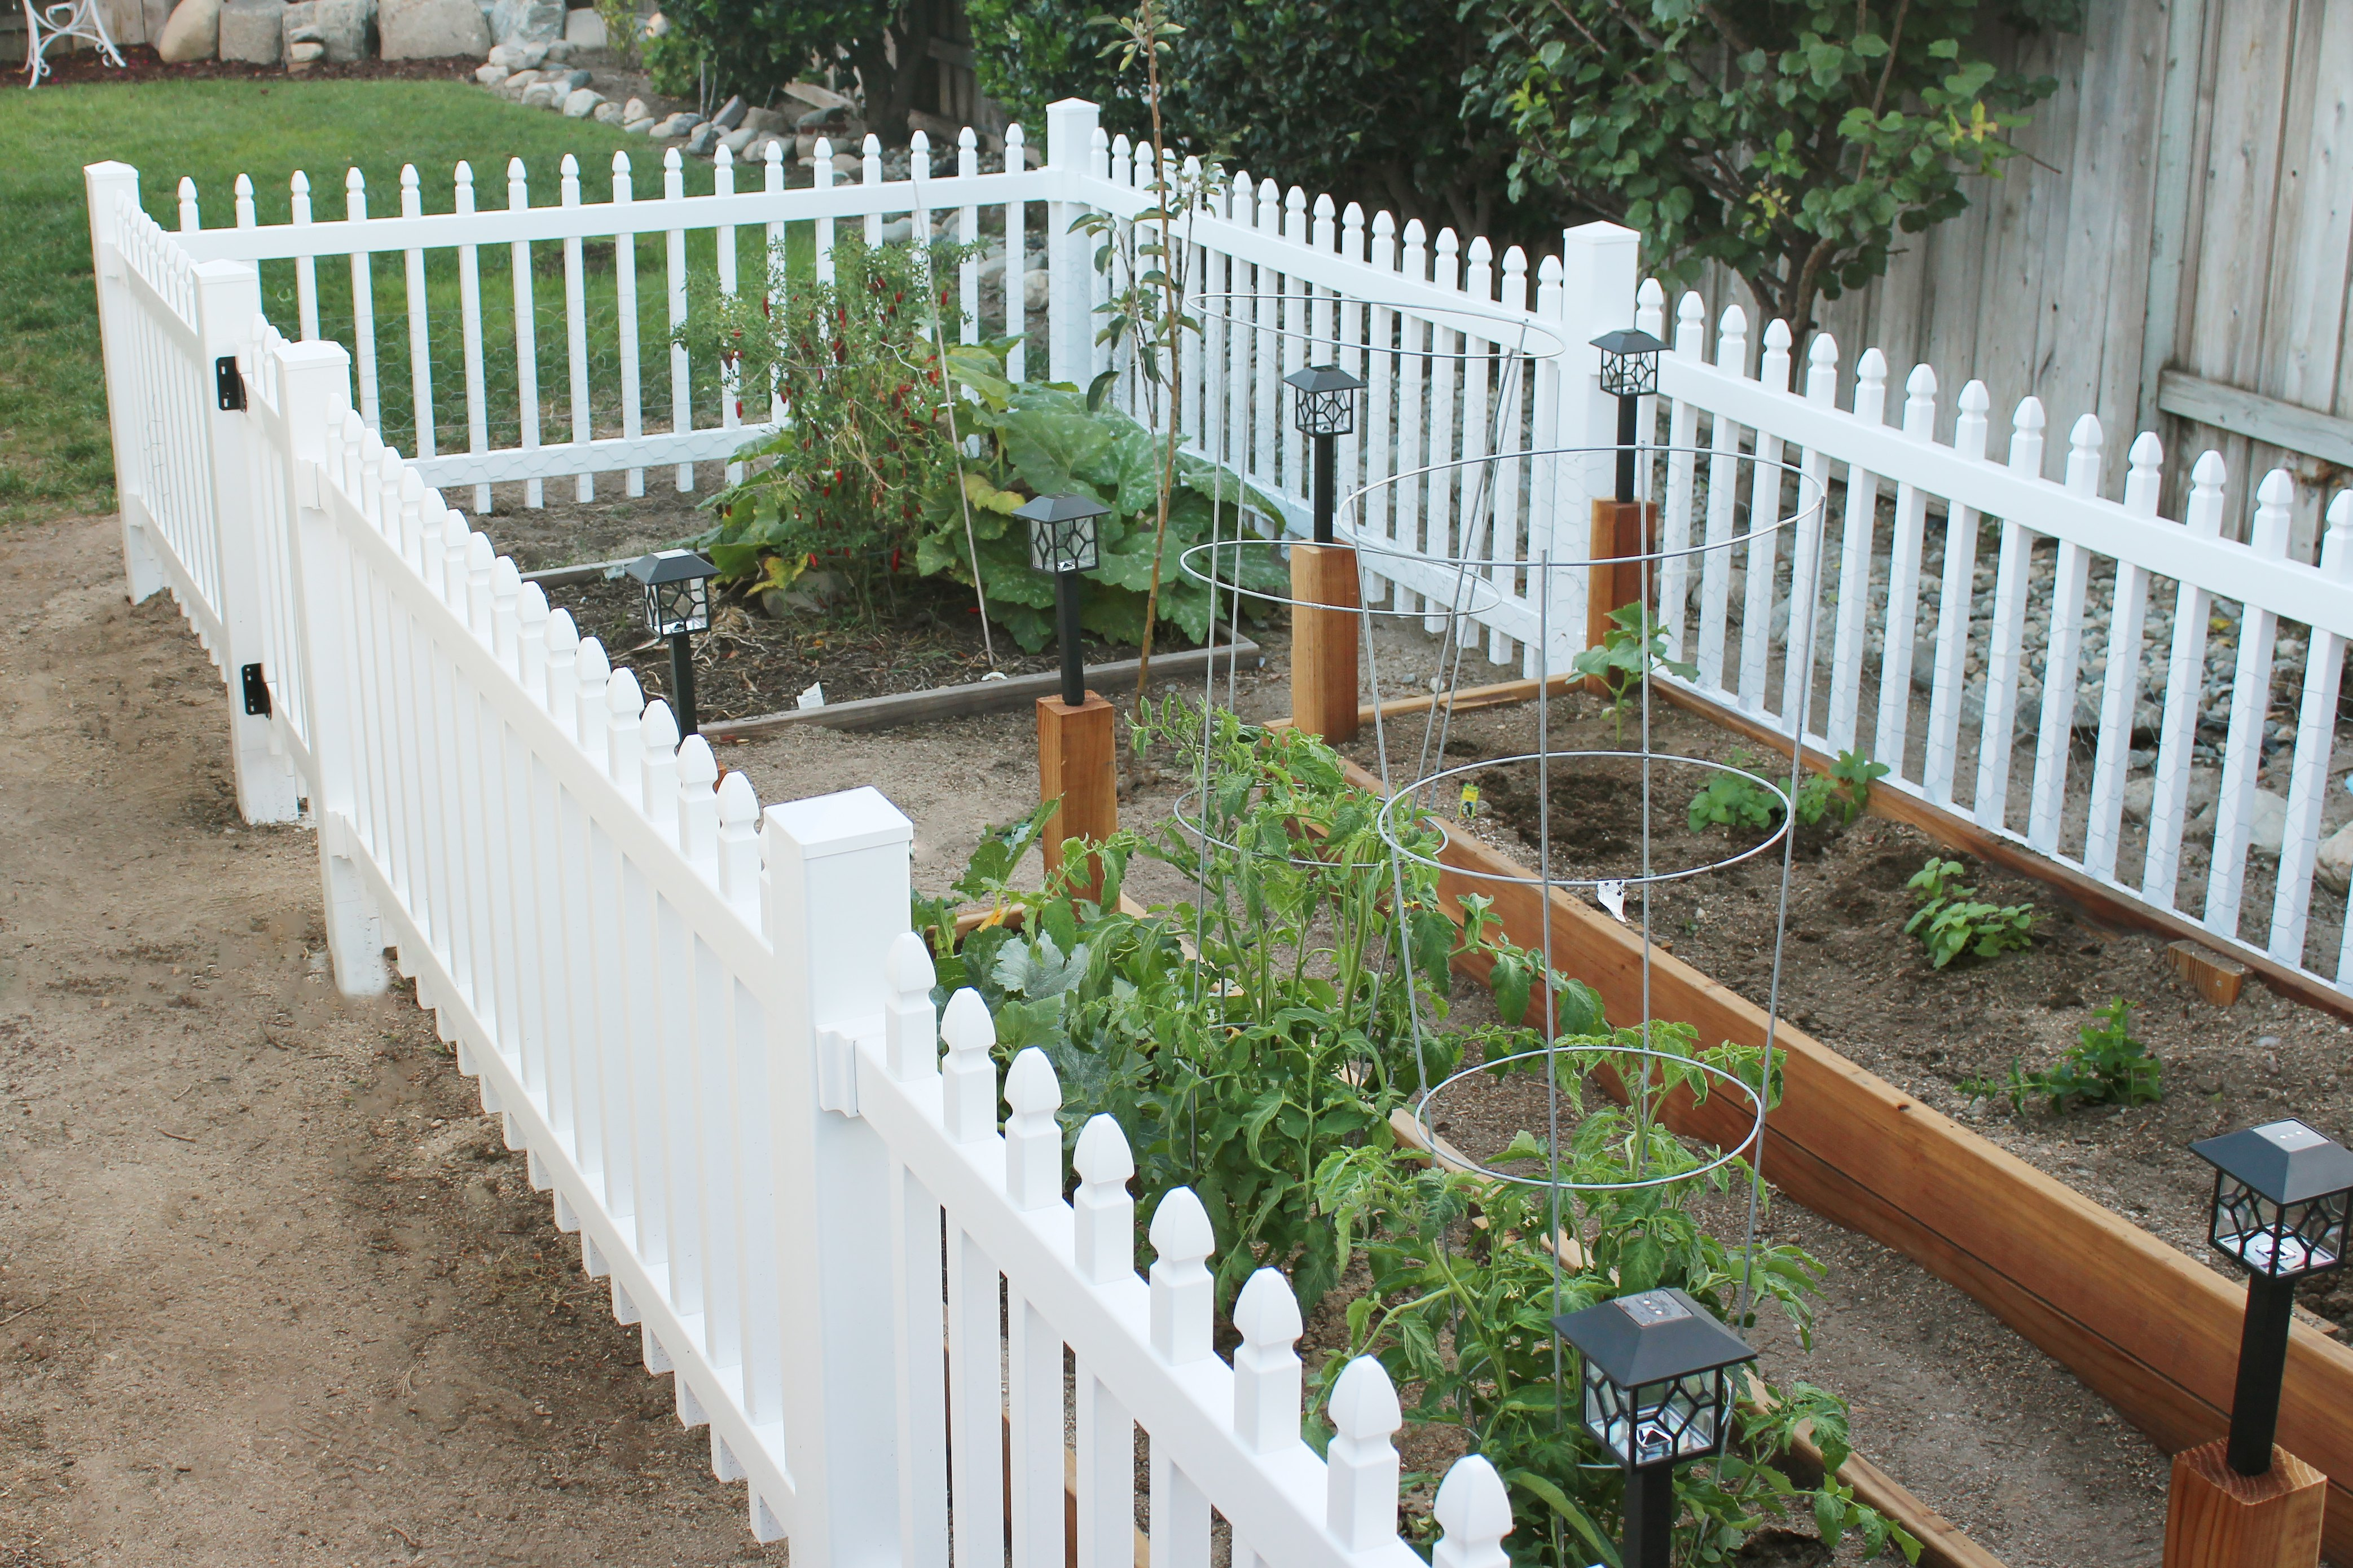 How To Build A Fence To Keep Small Animals Out Of The